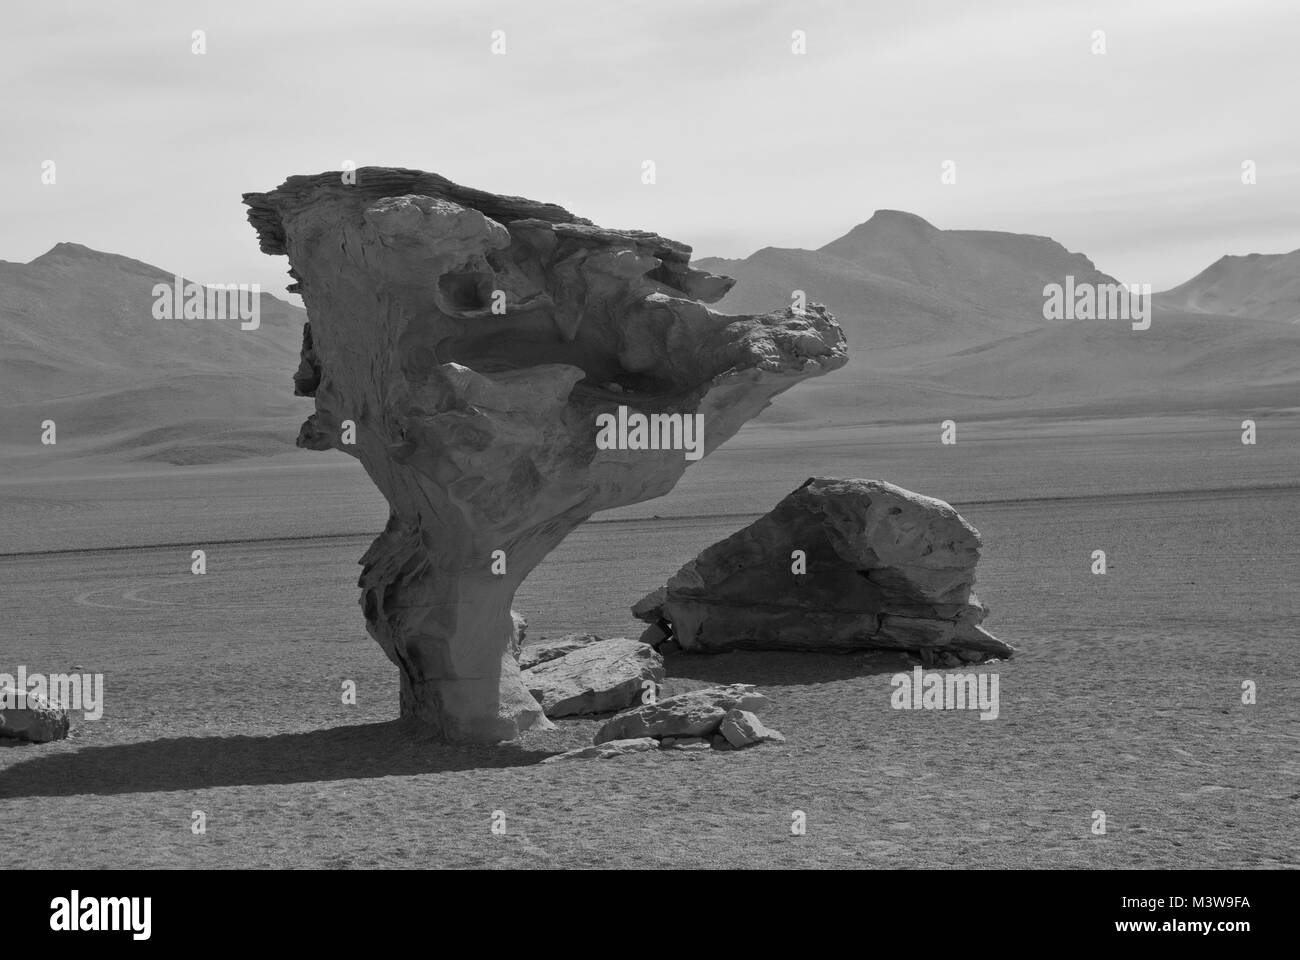 A stone in the shape of a tree in the high-altitude desert of Bolivia Stock Photo